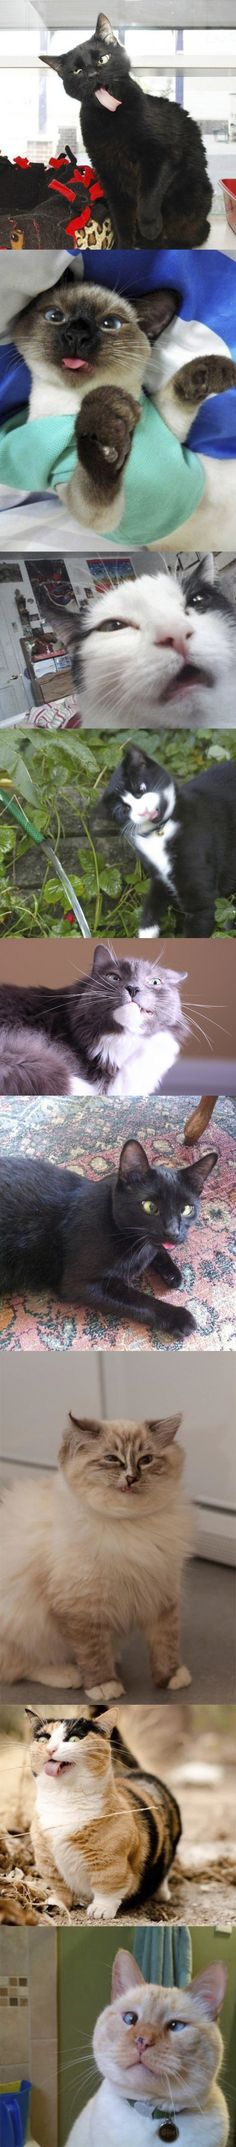 Derpy Cats